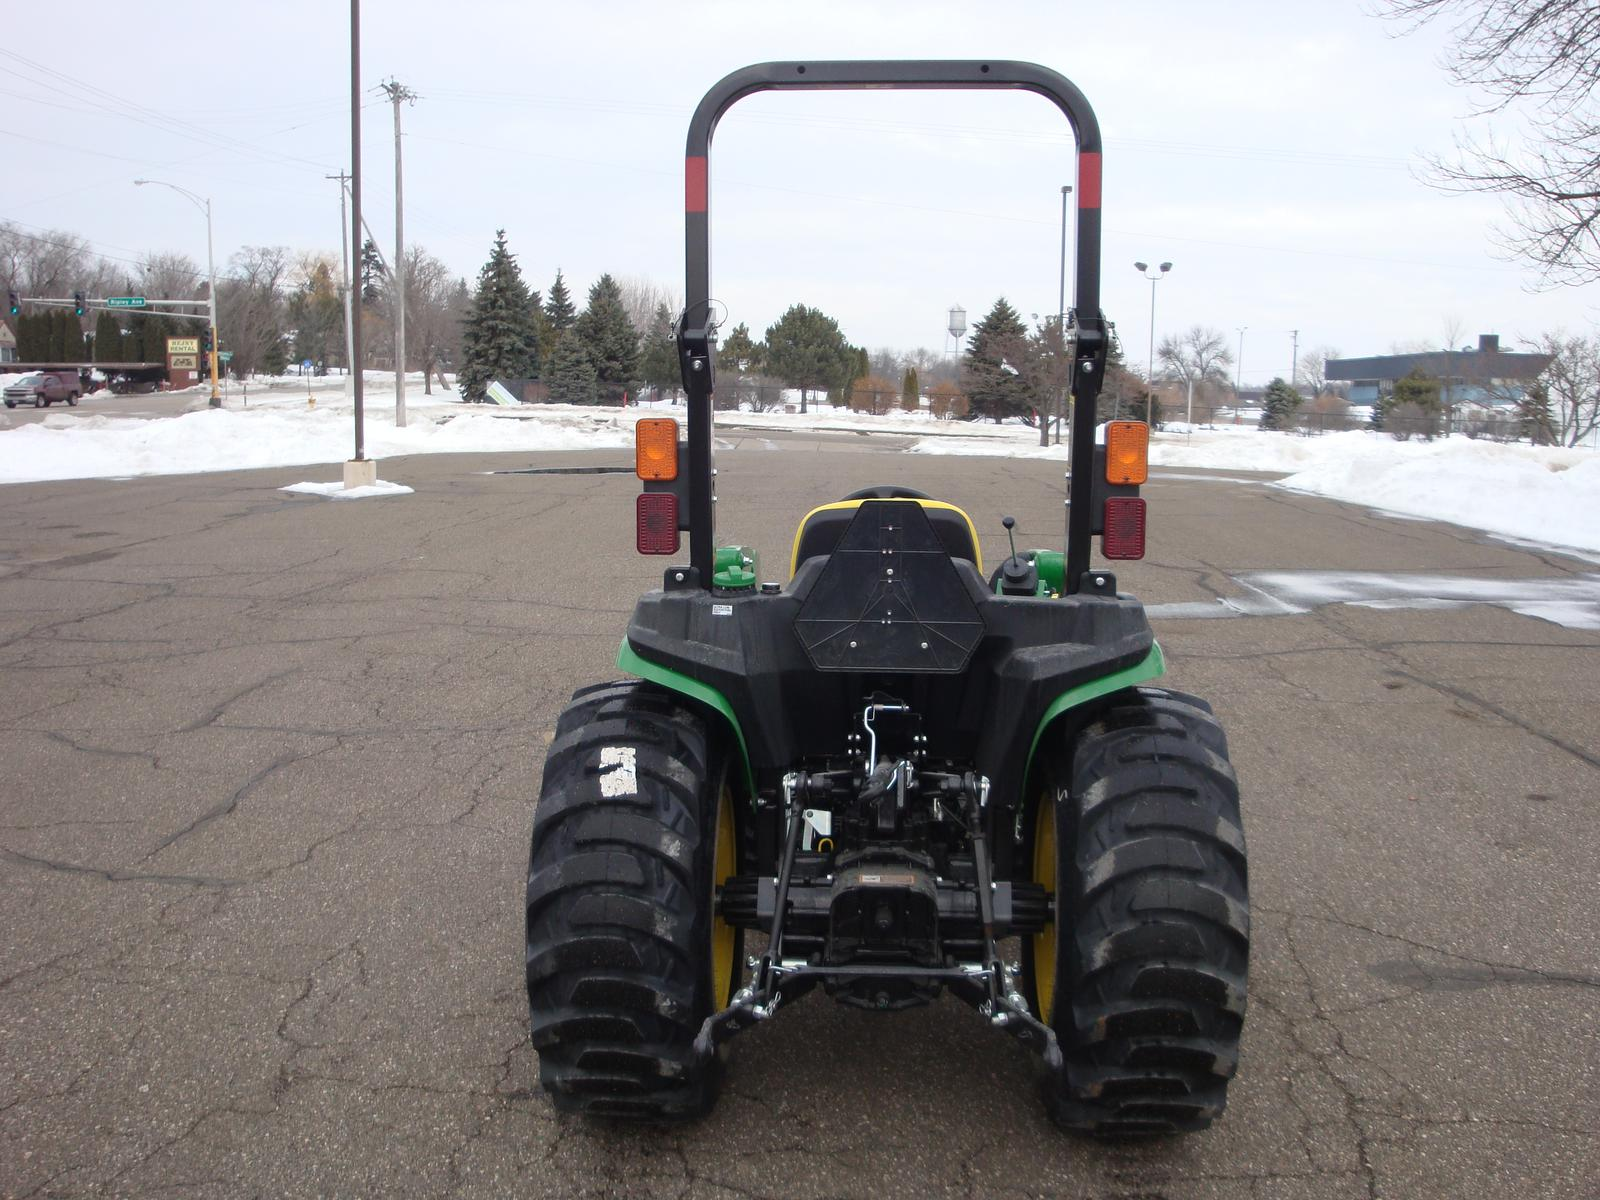 2019 John Deere 3032E for sale in Maplewood, MN  Gruber's